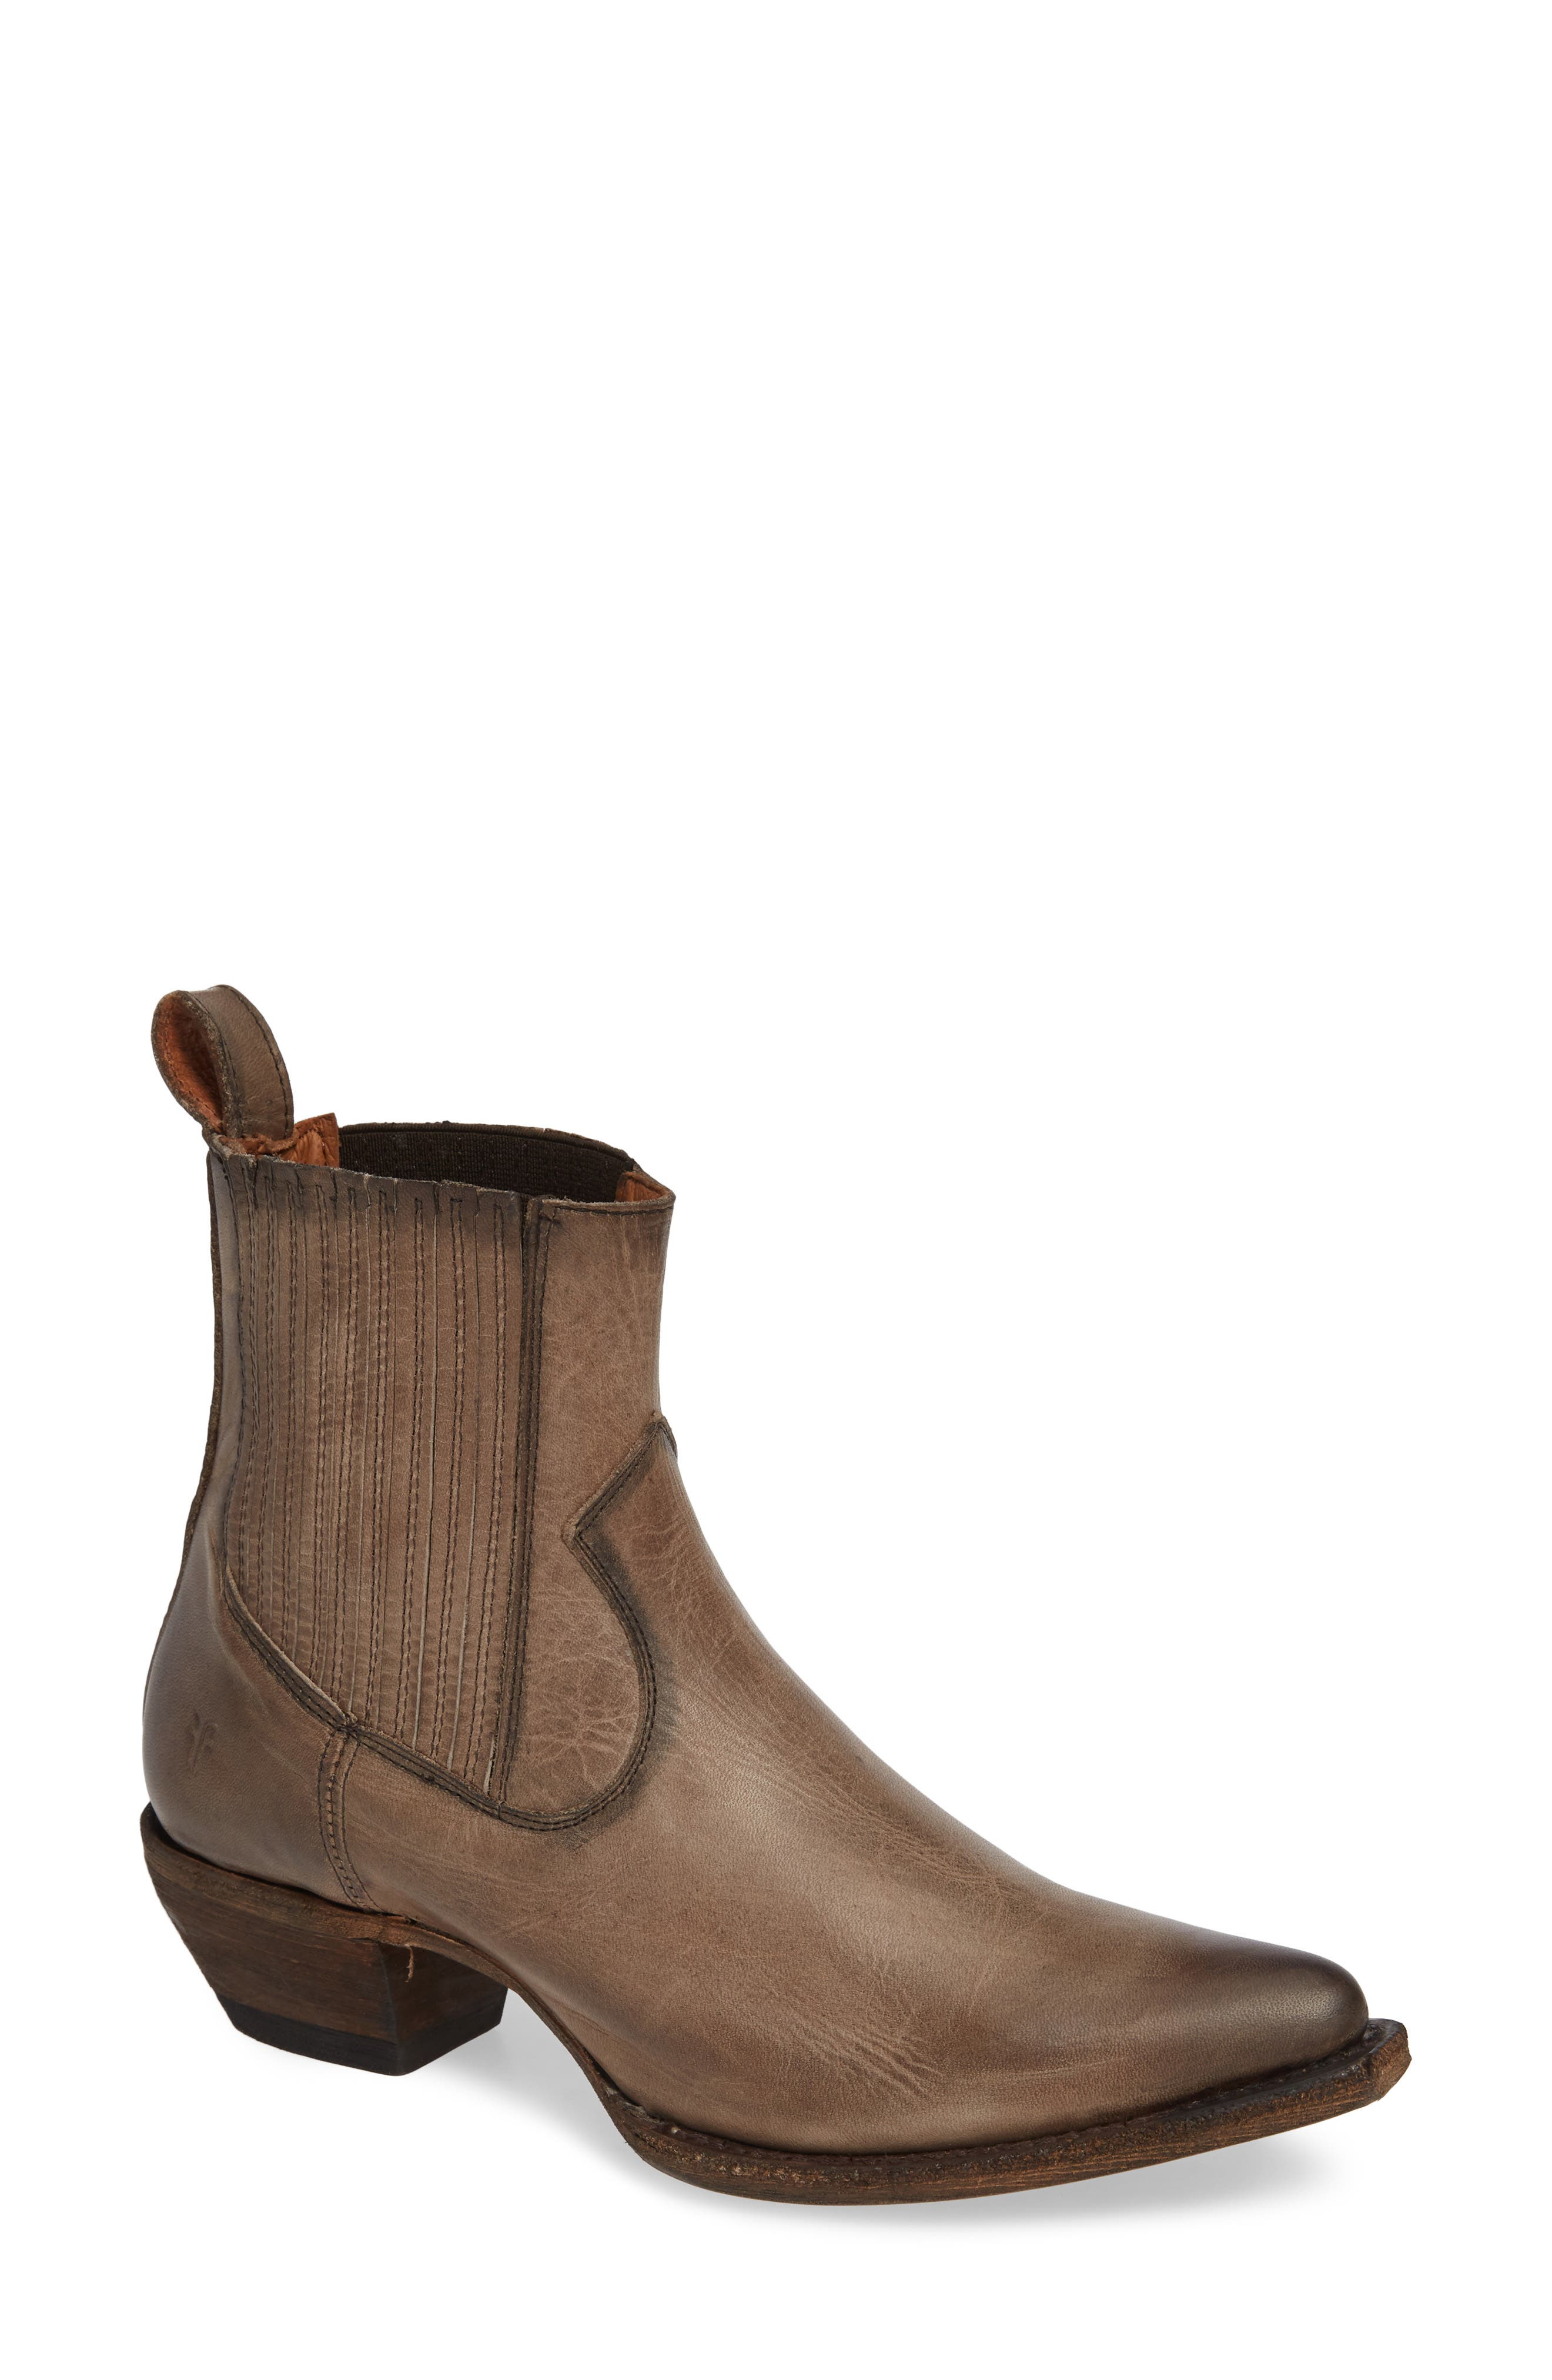 FRYE Sacha Western Bootie, Main, color, STONE LEATHER